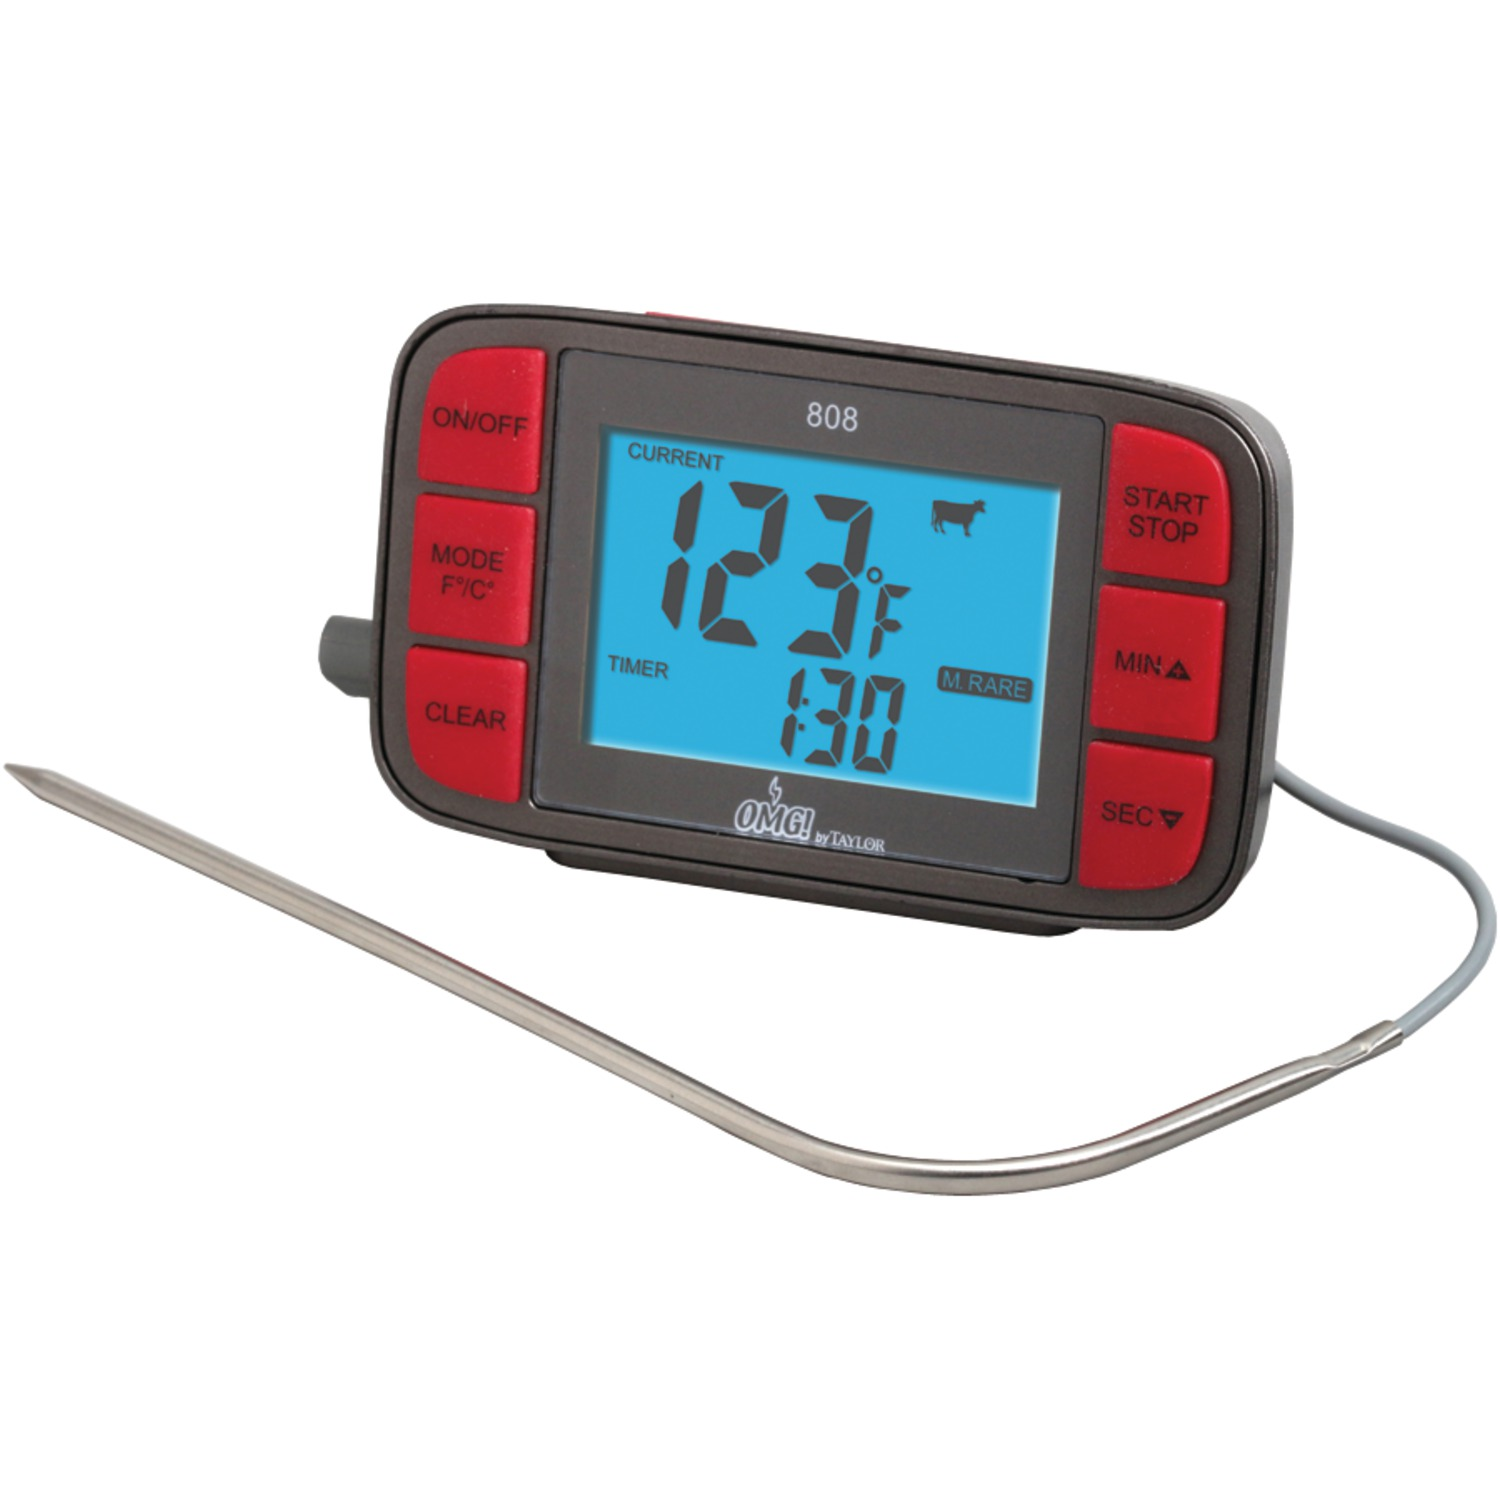 taylor 808omg digital grill thermometer with probe timer. Black Bedroom Furniture Sets. Home Design Ideas